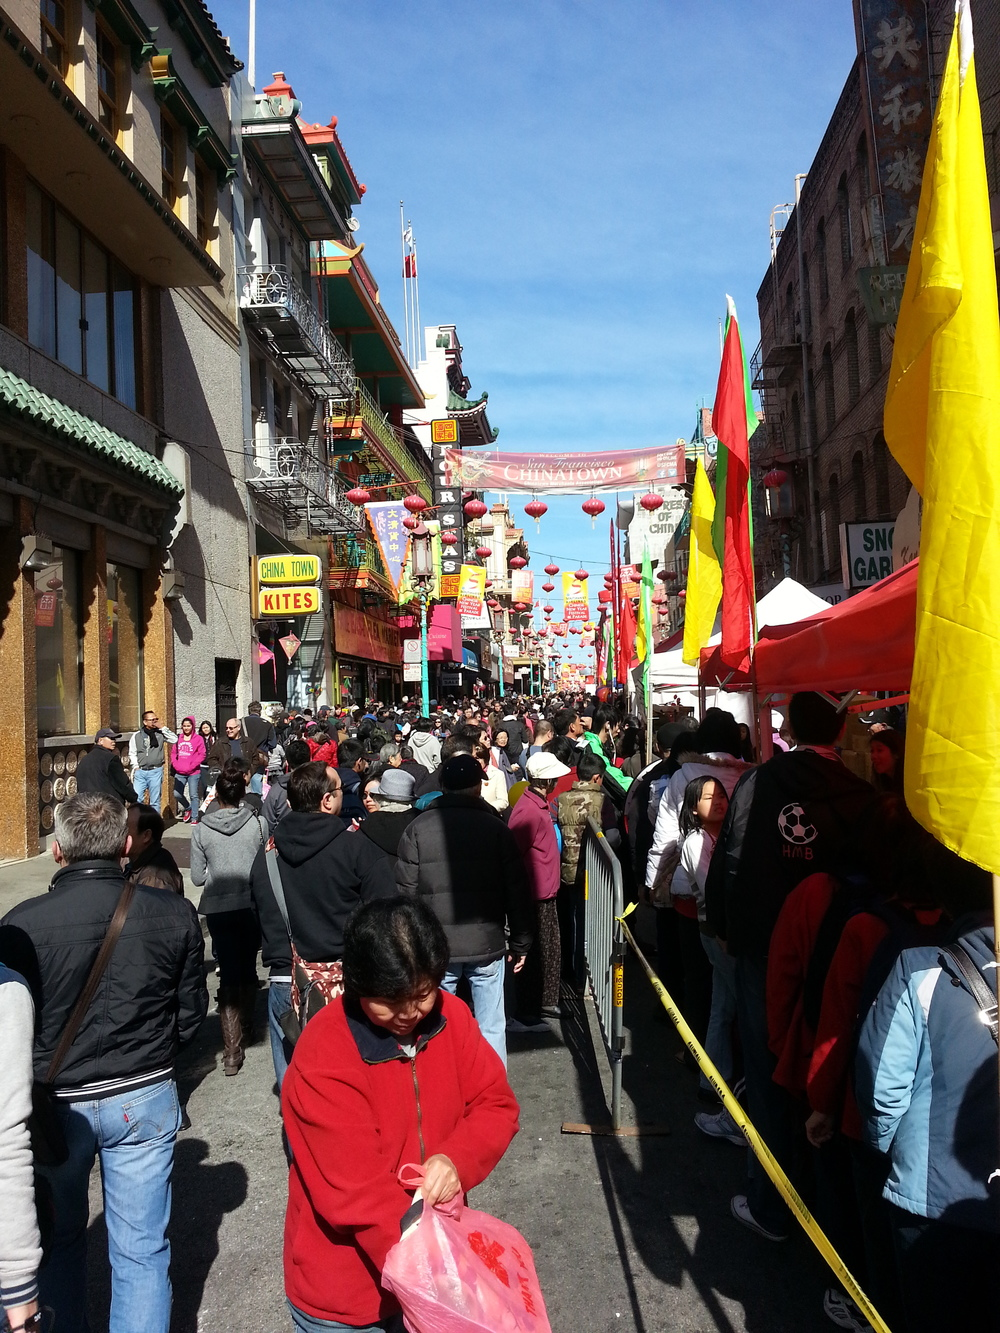 Chinese New Year - San Francisco (update 3)